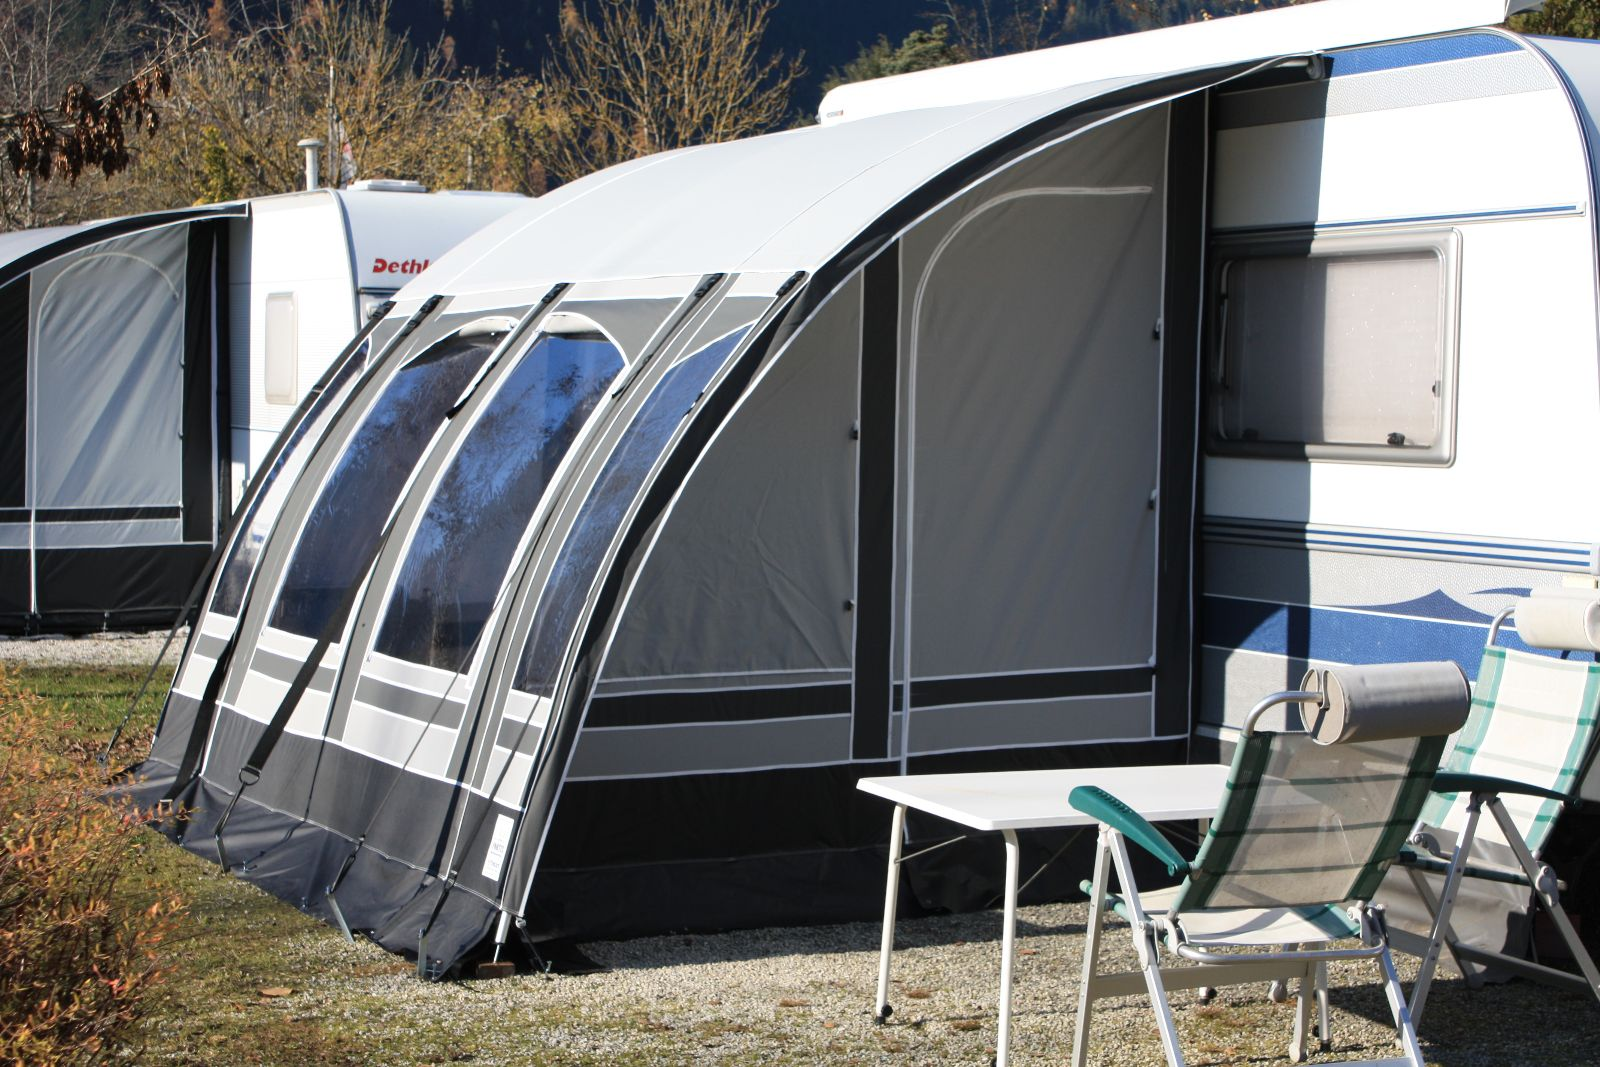 Winter Zelte Markise Camper